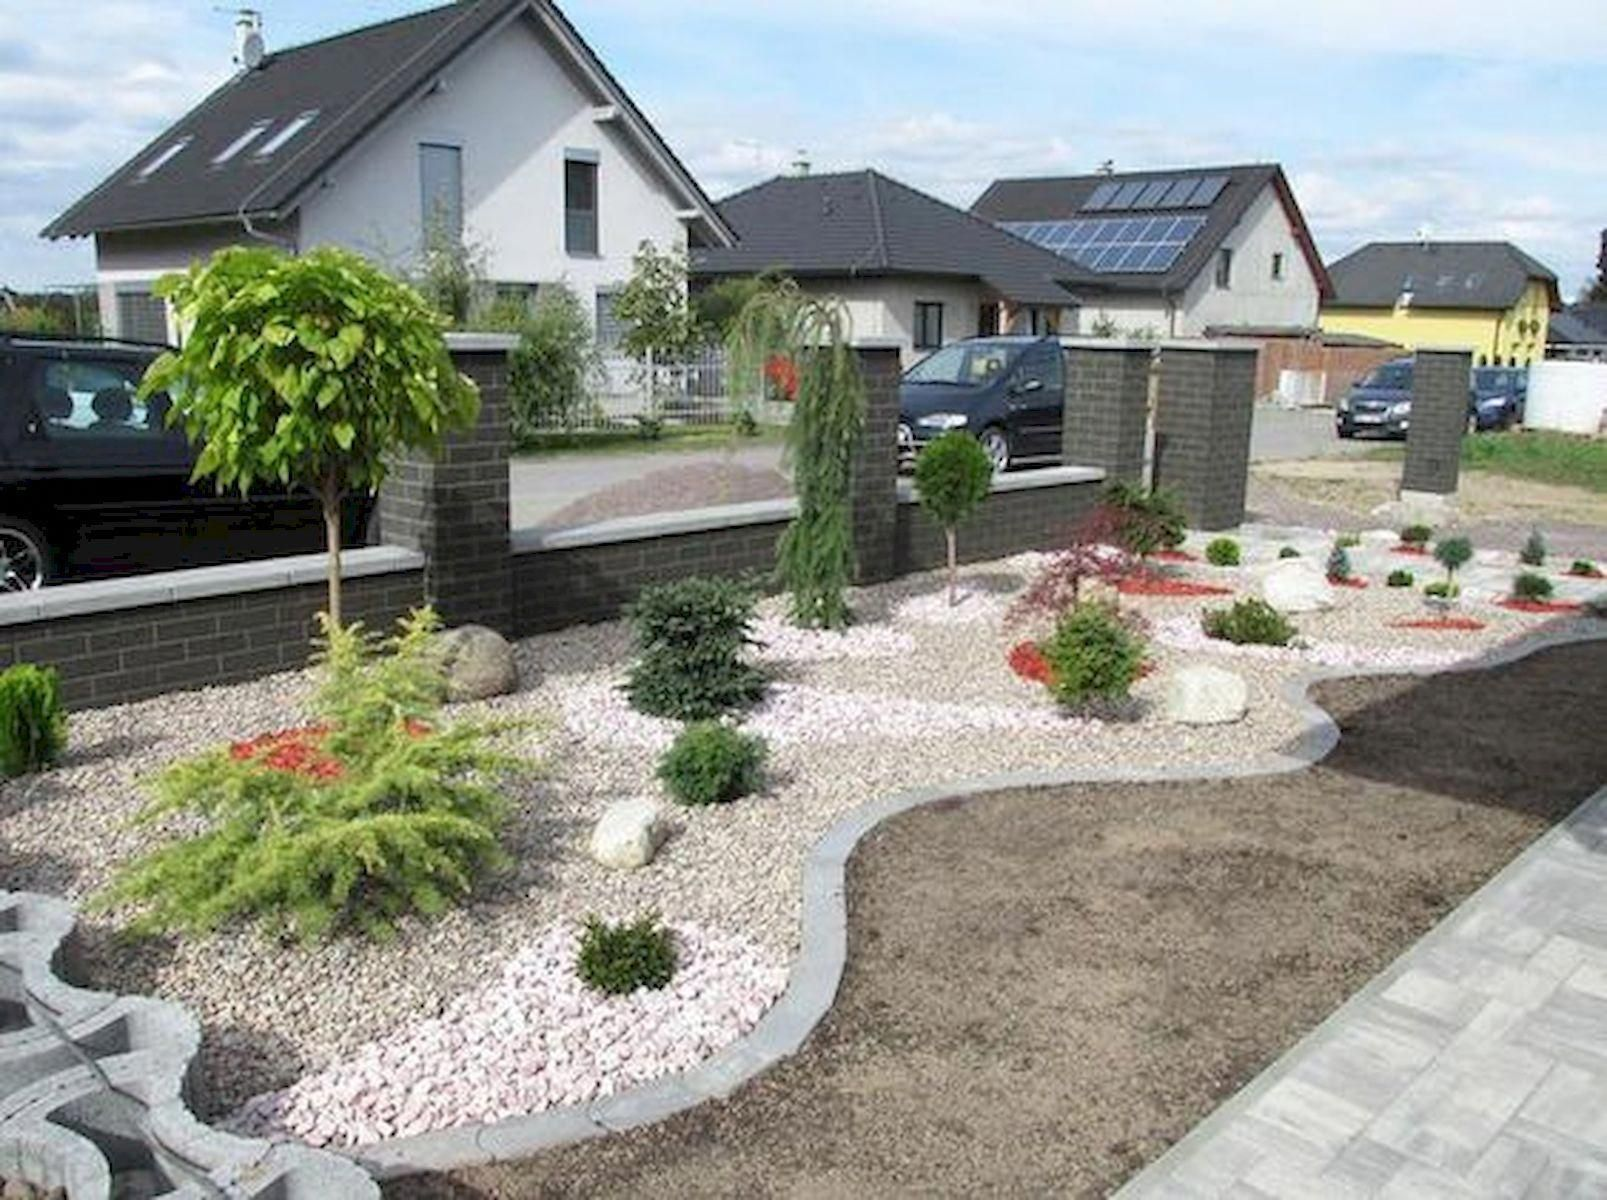 90 Simple and Beautiful Front Yard Landscaping Ideas on A ... on Landscaping Ideas For Front Yard On A Budget id=74646